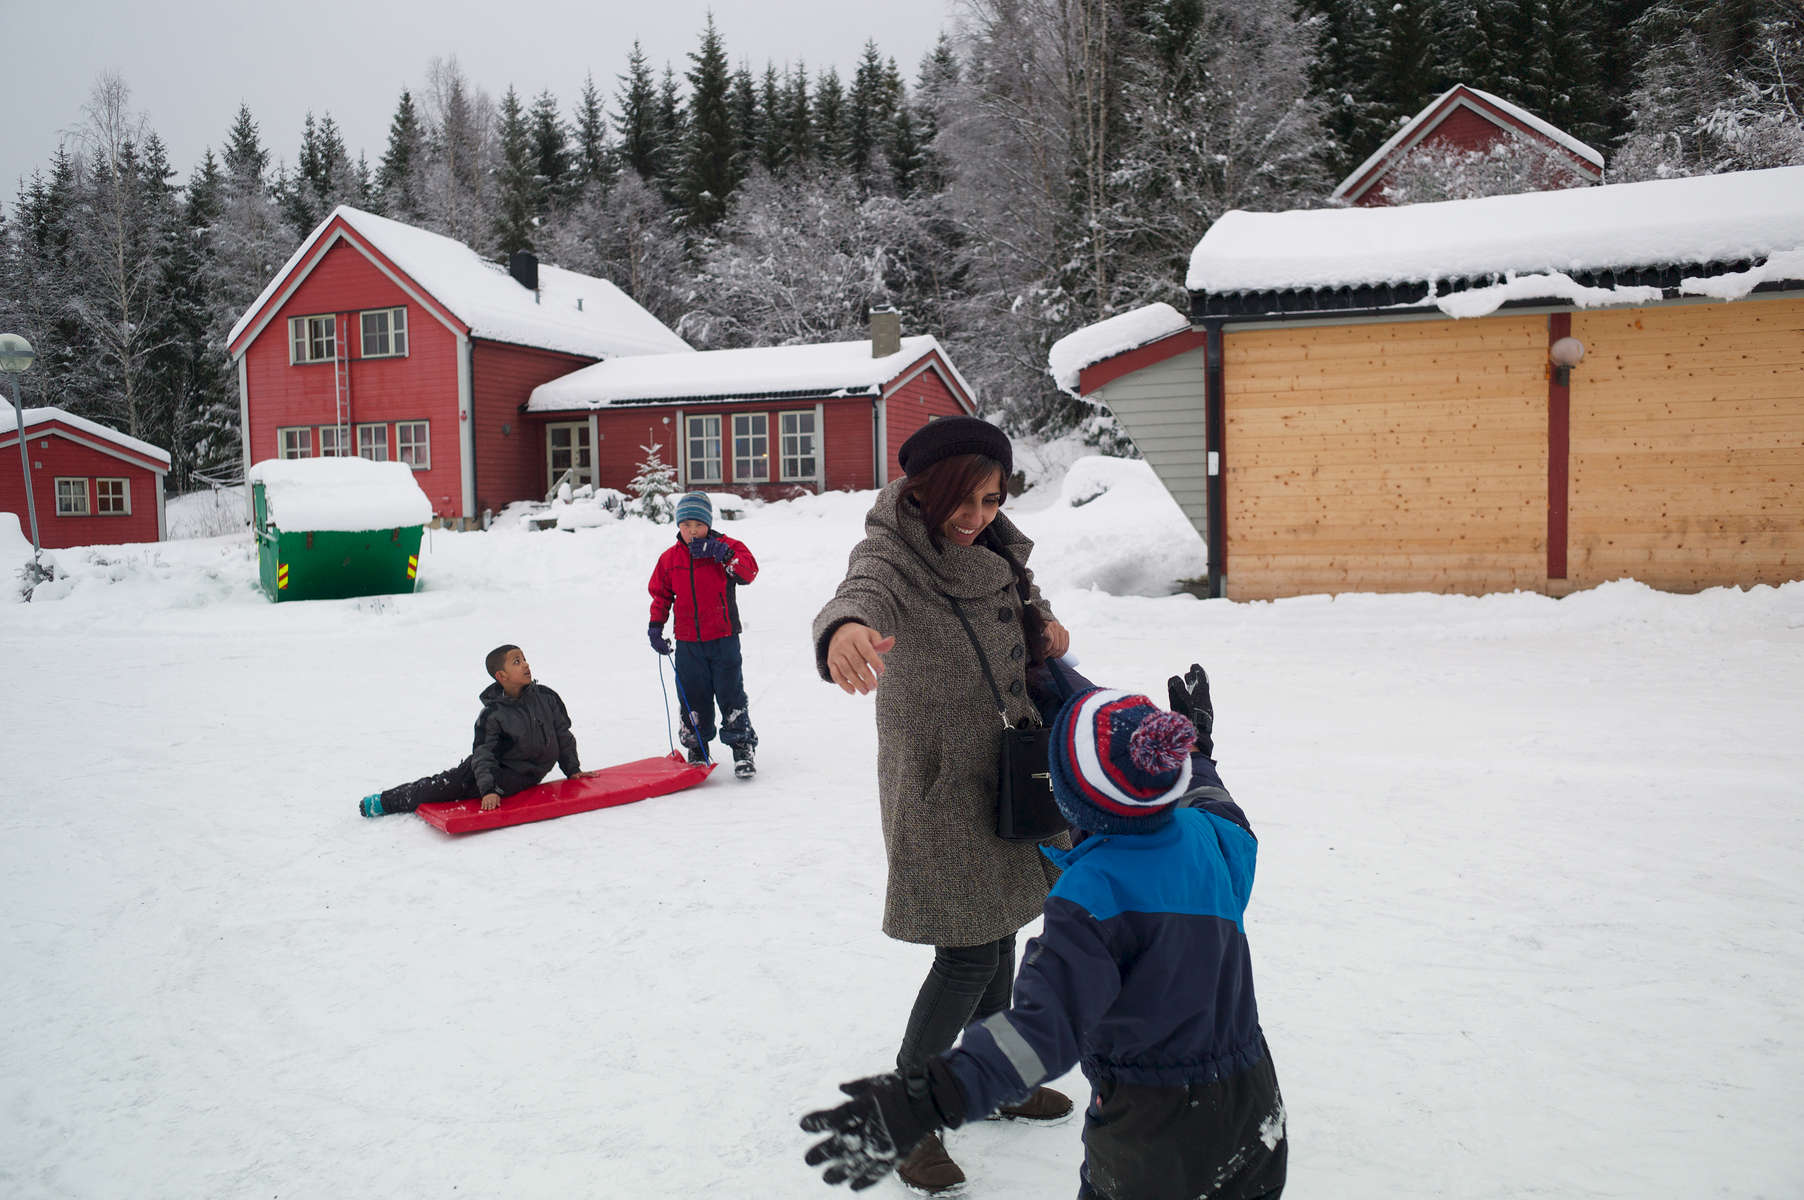 A rejected asylum seeker standing outside in the snow hugs a young child.